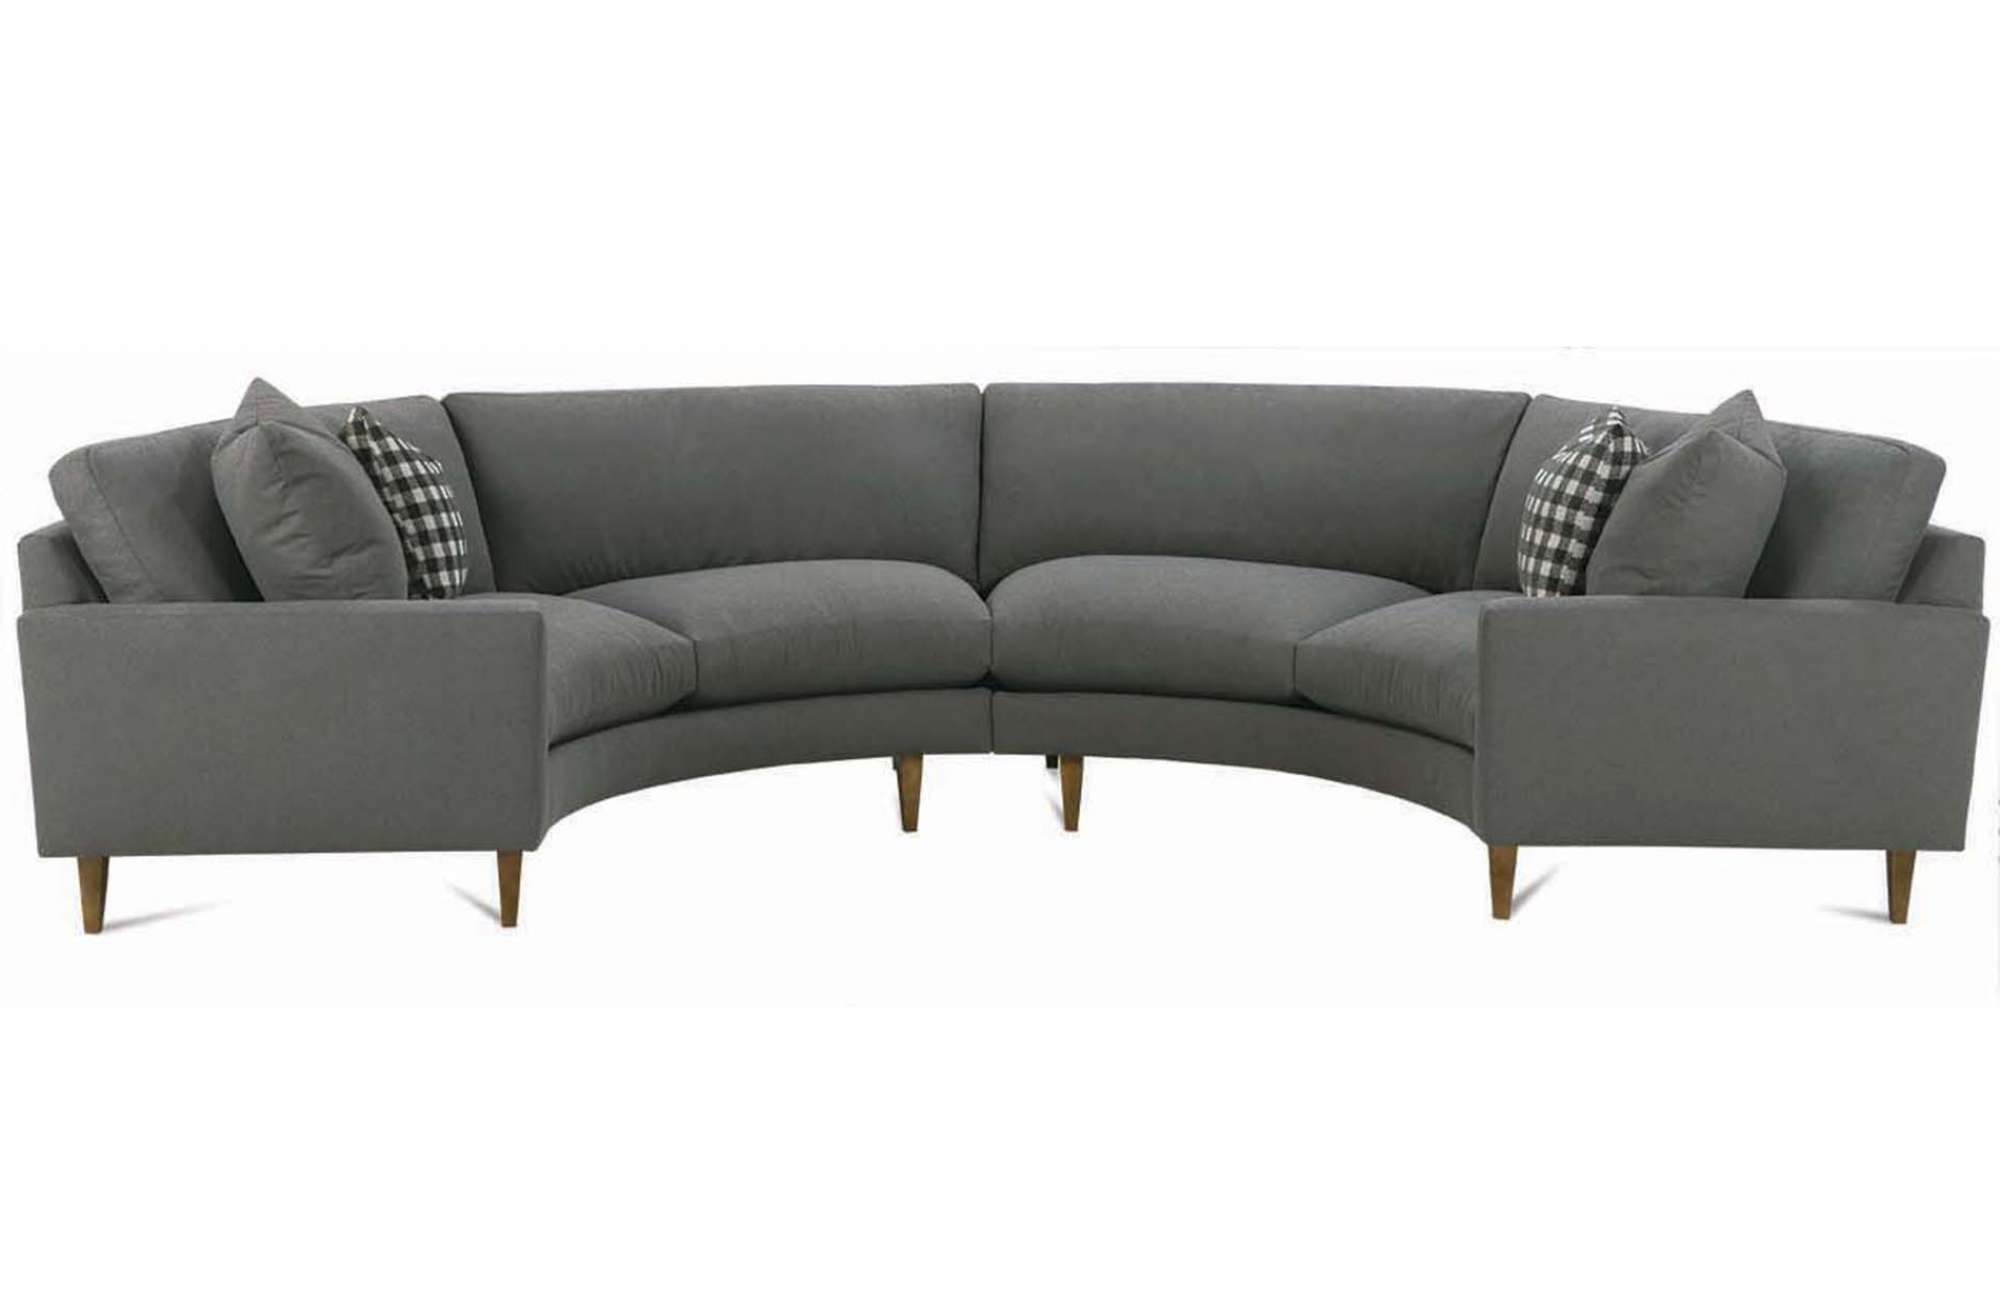 Ripley Curved Sectional Inside Well Known Mobilia Sectional Sofas (View 12 of 15)